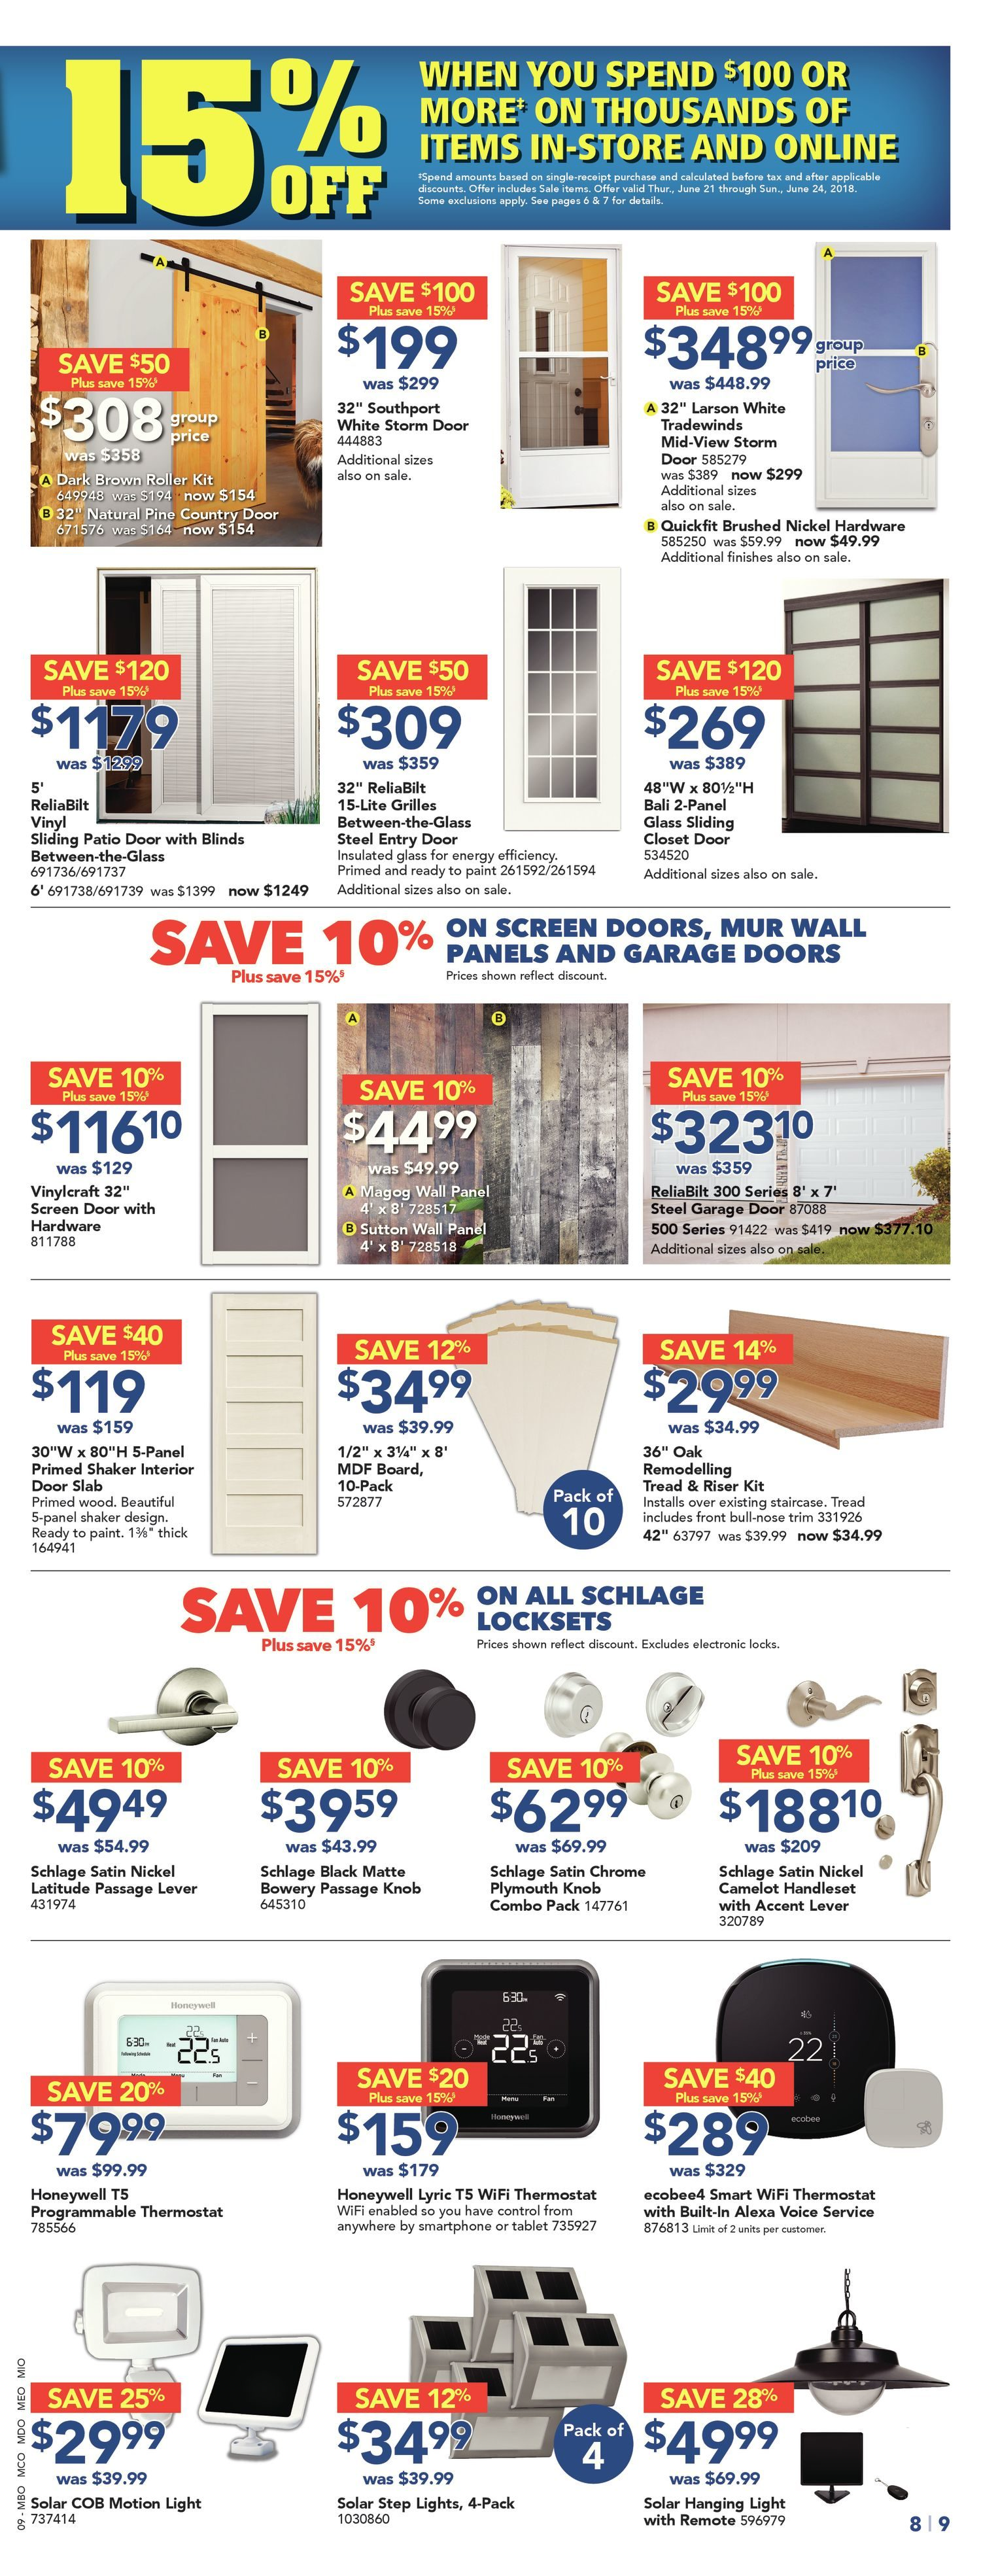 on coupons faucet e ecommerce currency infographics leaking bitcoin direct store is commerce infographic images finance best money your faucets visualistan pinterest marketing